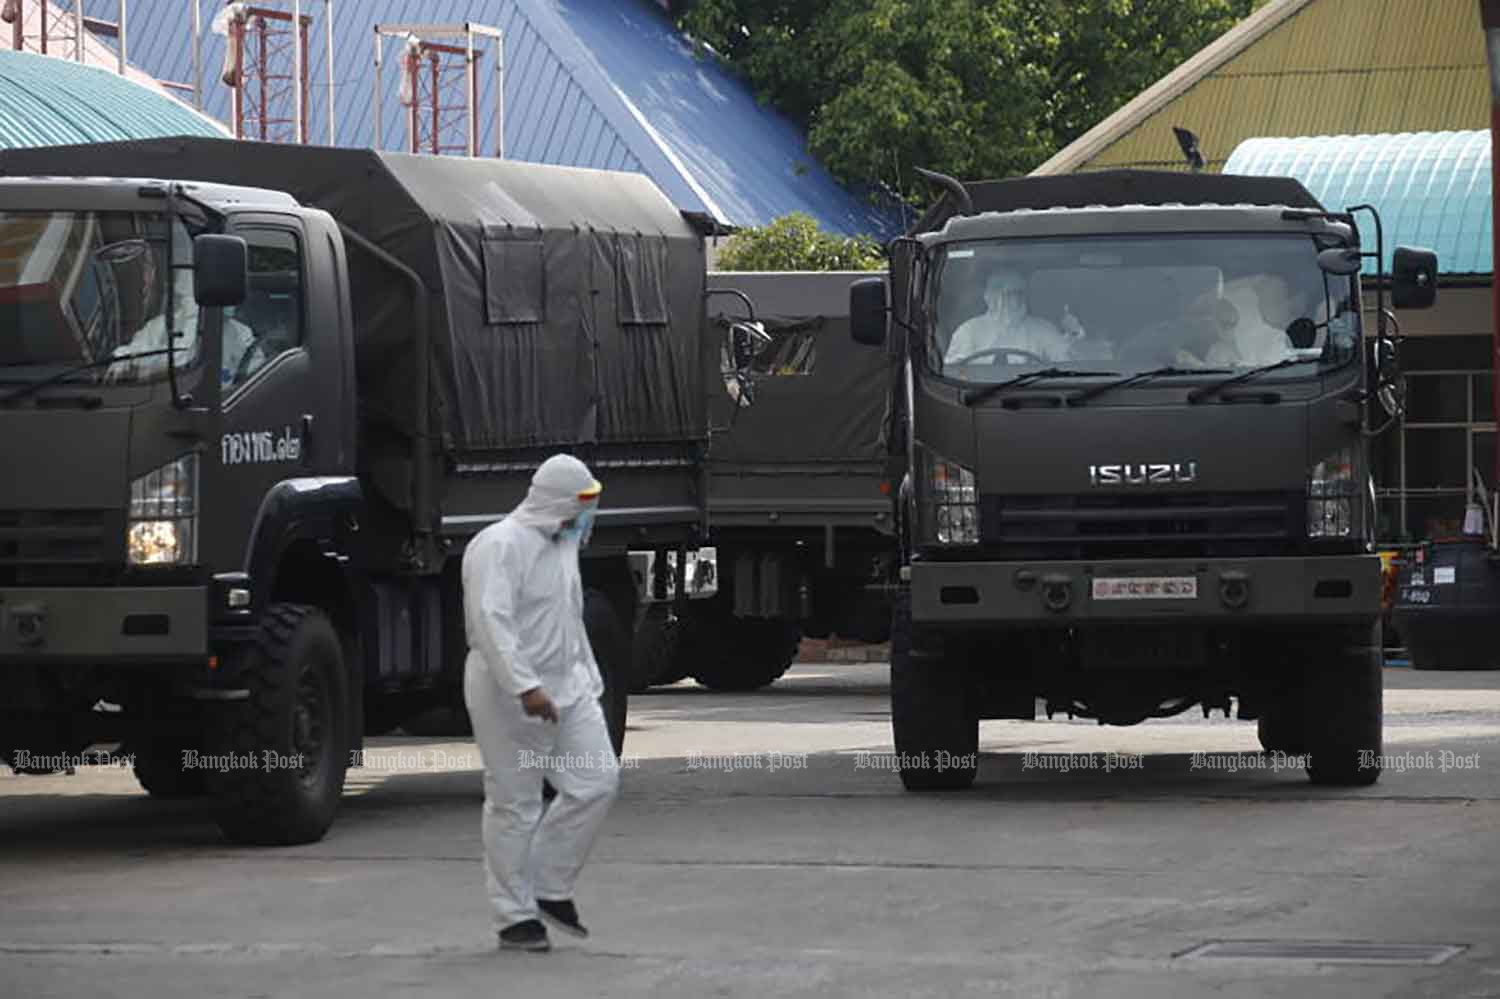 Army trucks take Covid-19 patients from Klong Toey district to a field hospital in Bangkok on Thursday, when the country reported 15 new Covid-19 deaths and 1,583 new cases. (Photo: Nutthawat Wicheanbut)